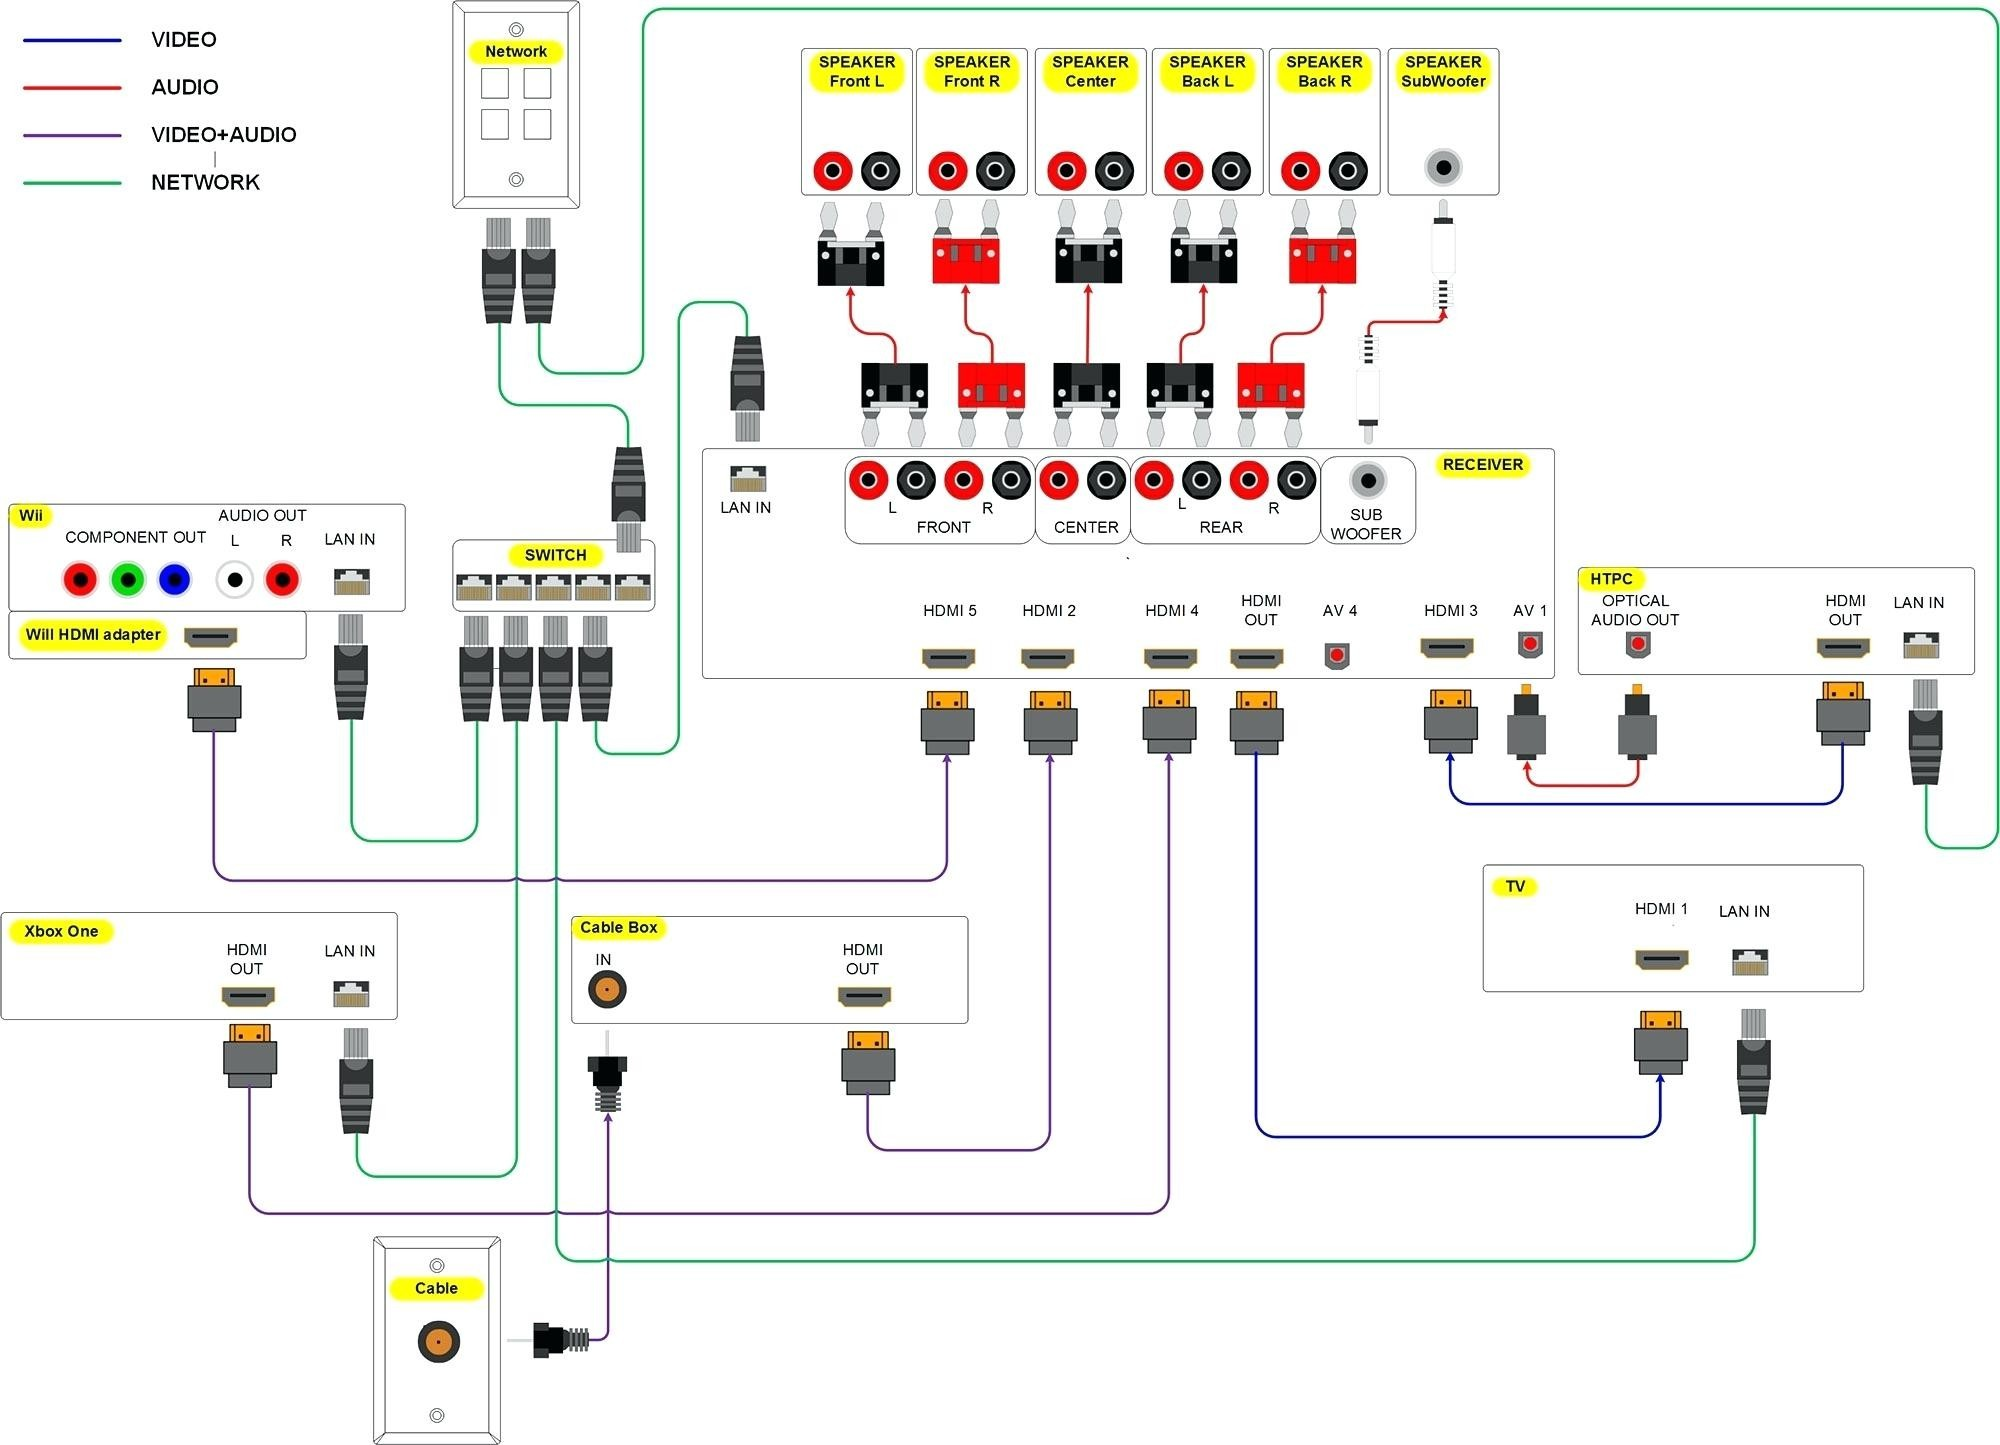 Speaker Volume Control Wiring Solutions Diagram For Nutone Wall On Home Diagrams With